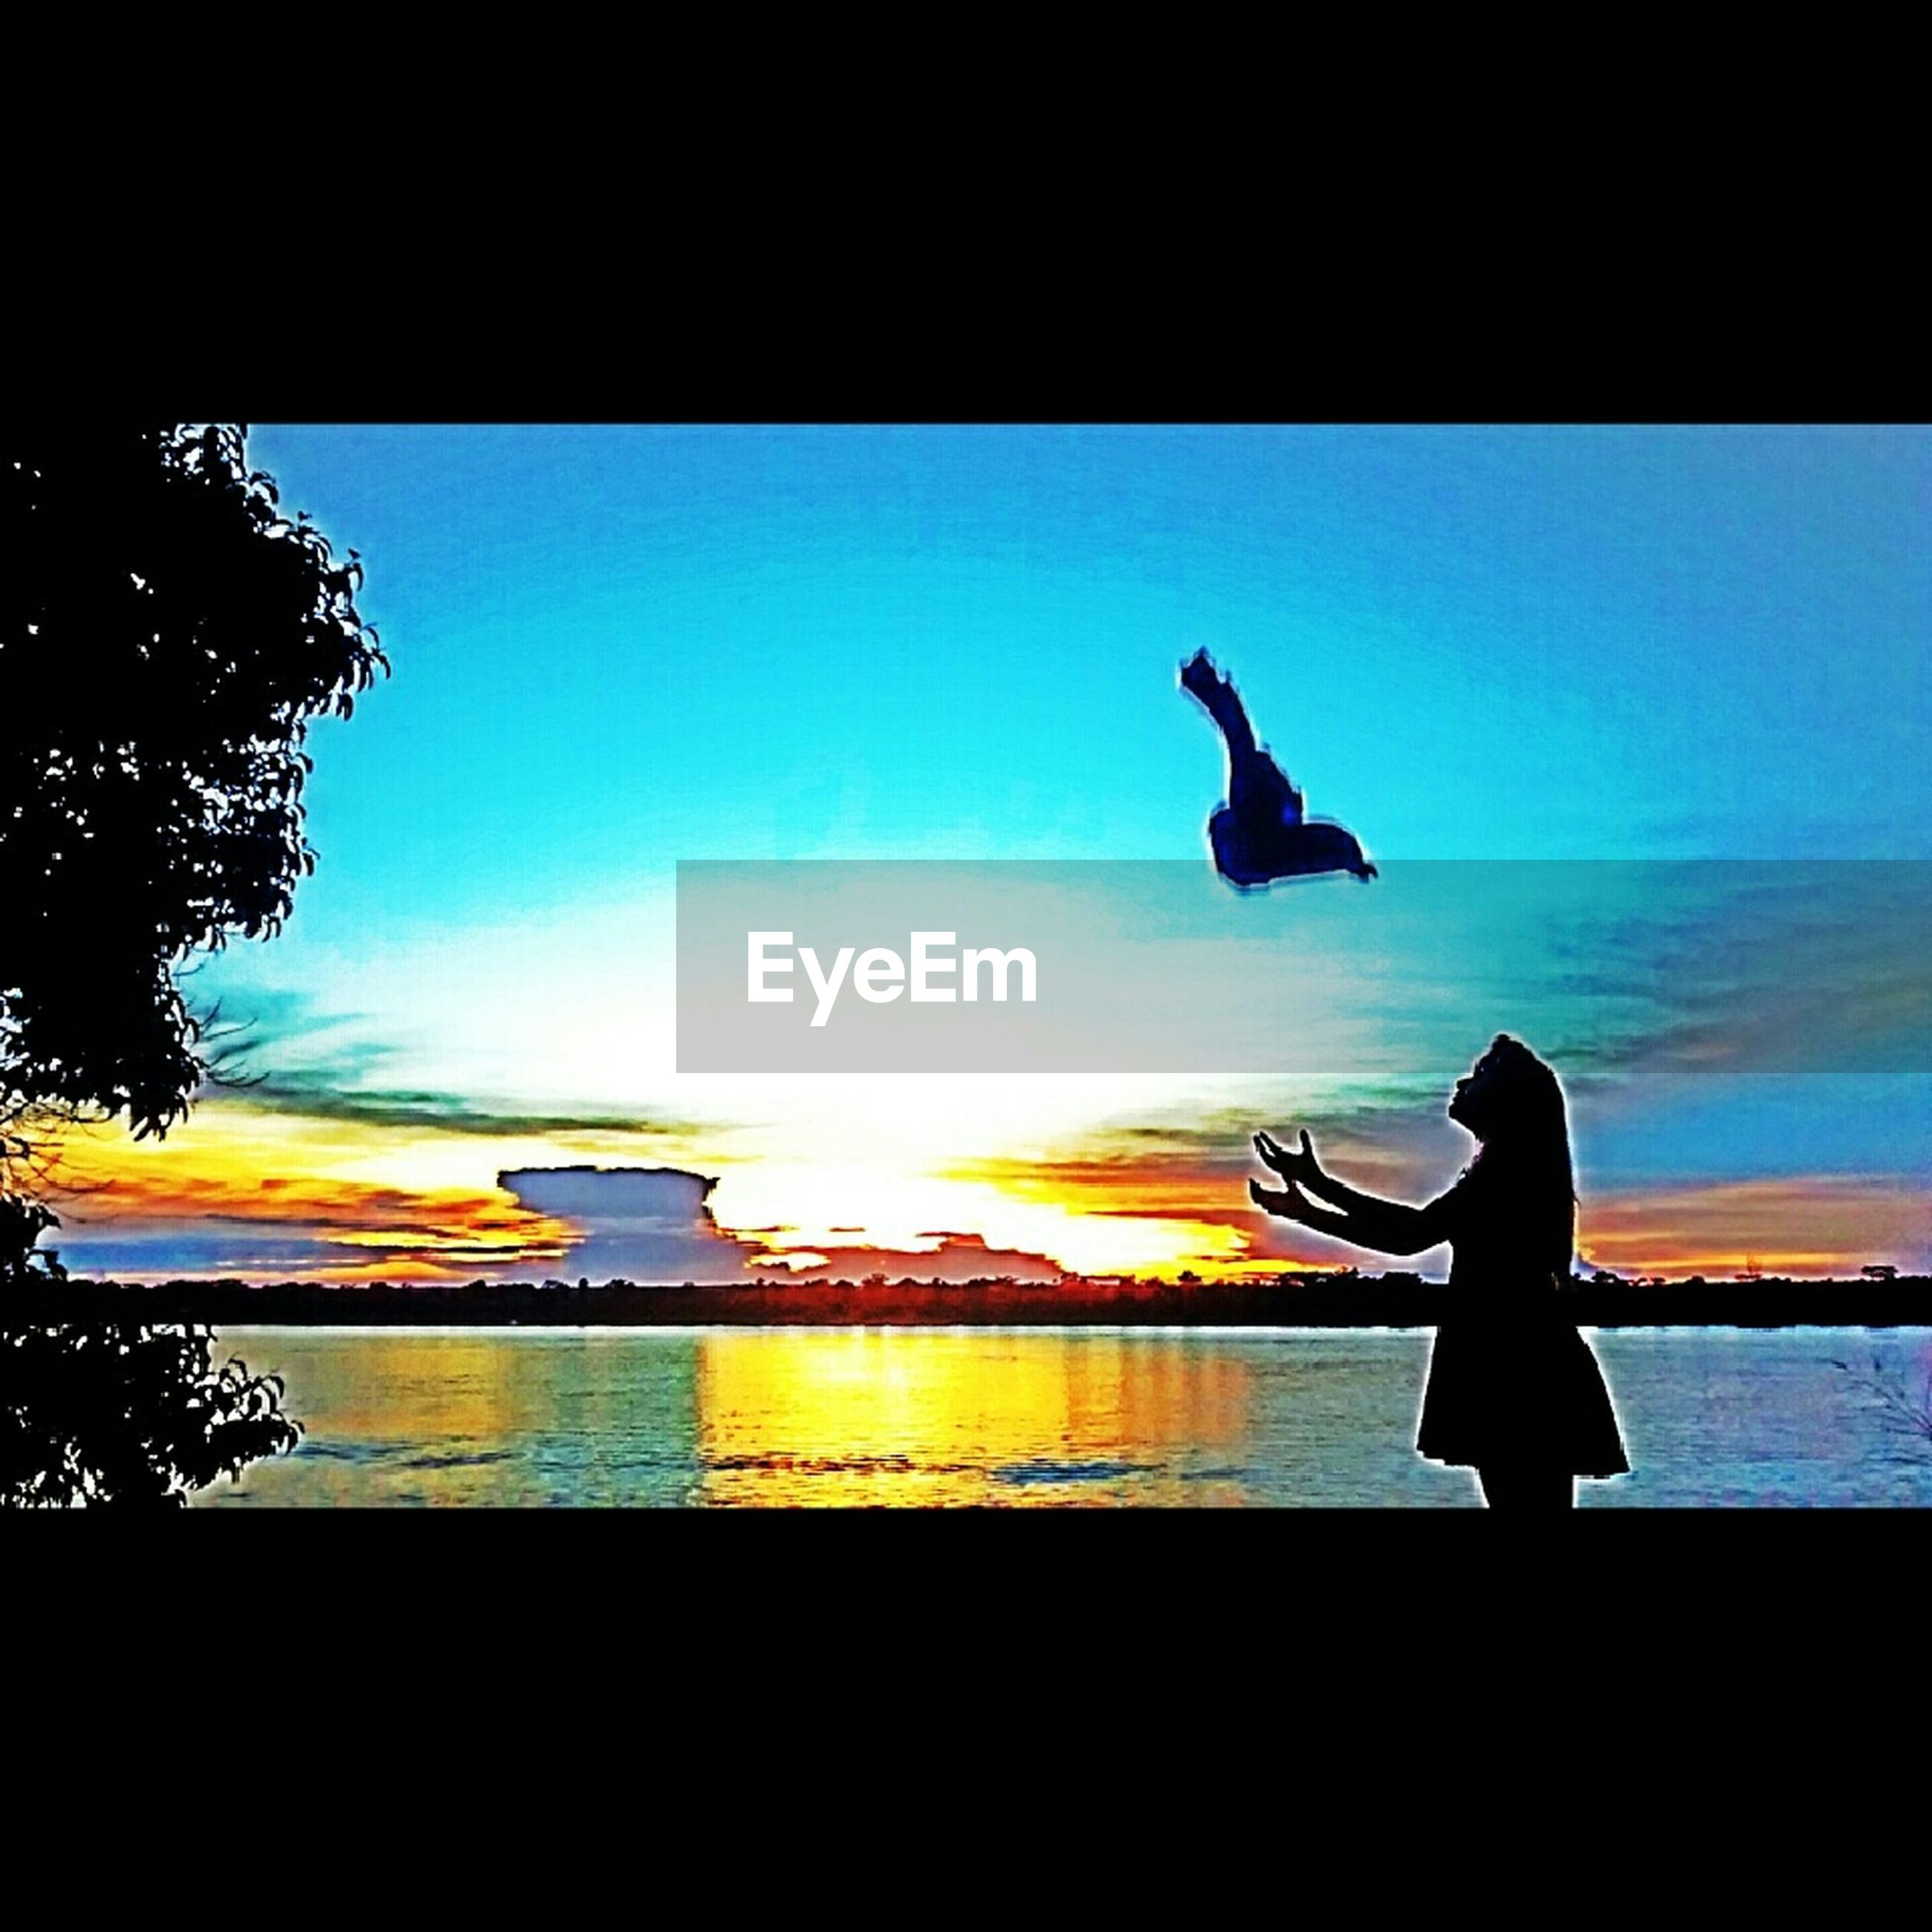 silhouette, sunset, full length, lifestyles, leisure activity, sky, men, orange color, standing, bird, side view, nature, rear view, outdoors, one animal, outline, person, jumping